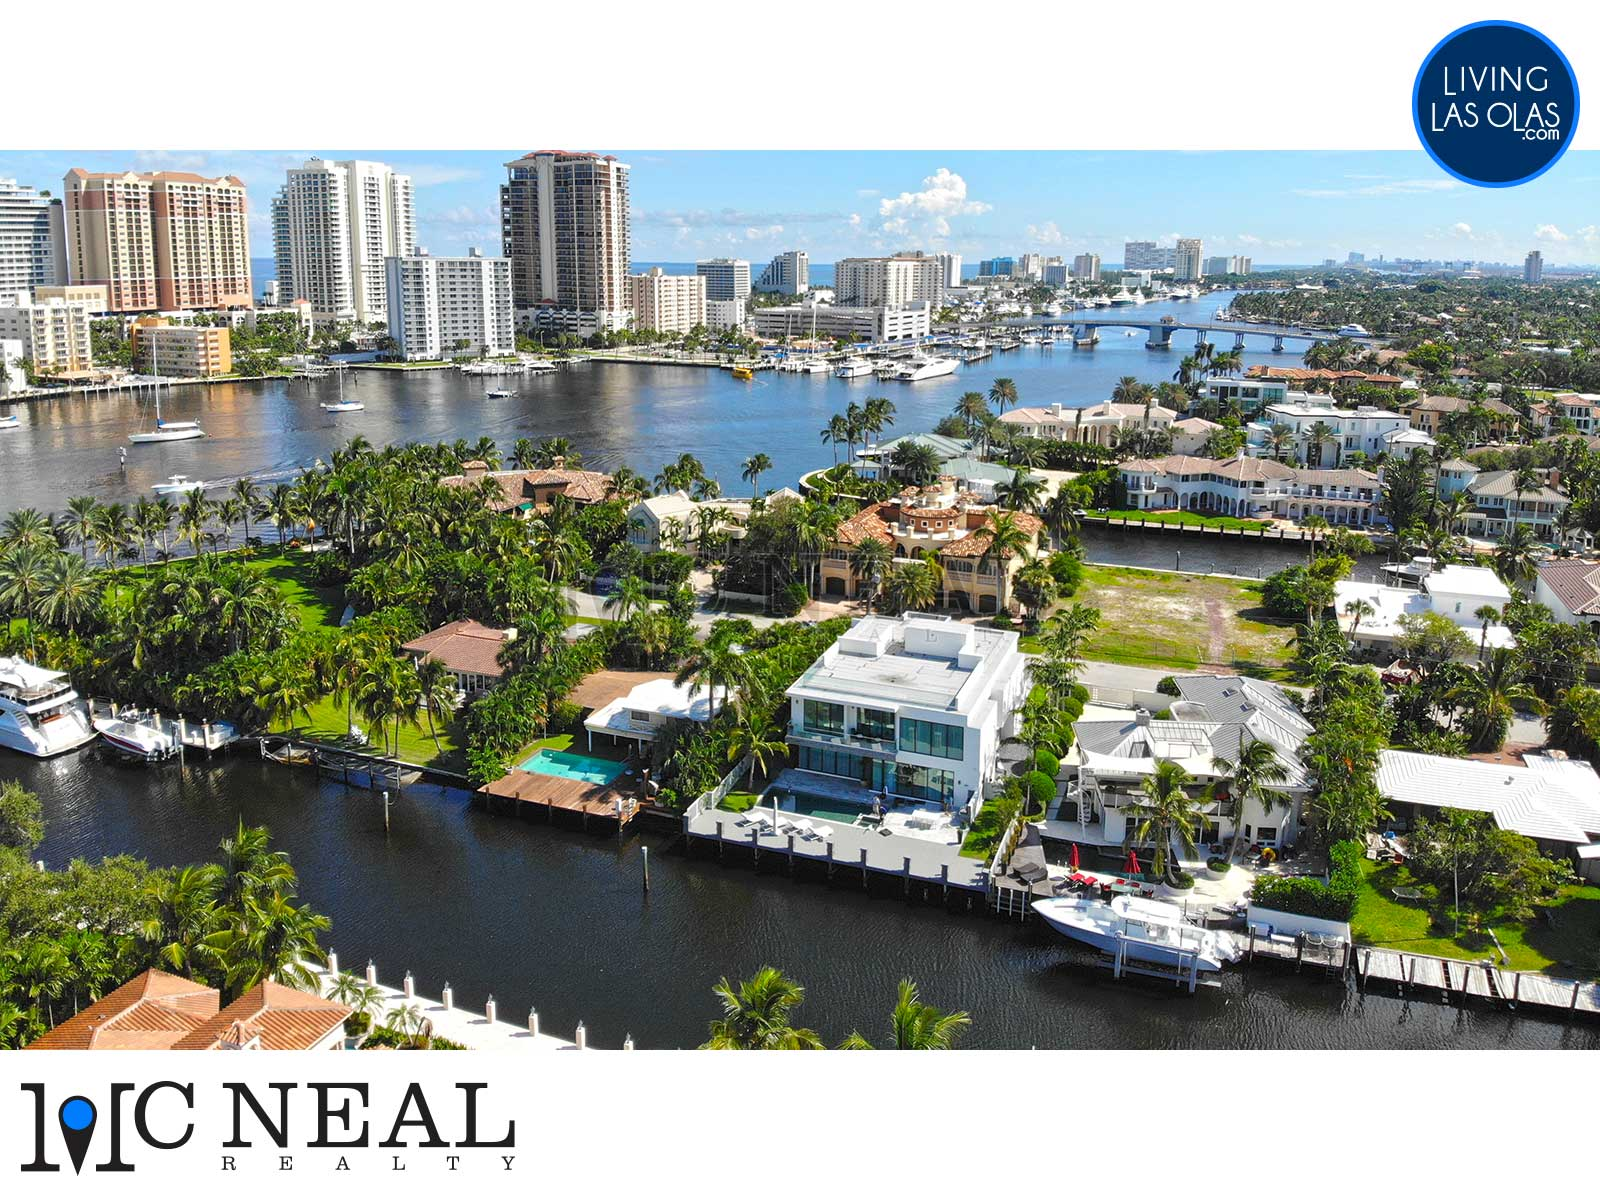 Seven Isles Homes Real Estate Las Olas Isles 02